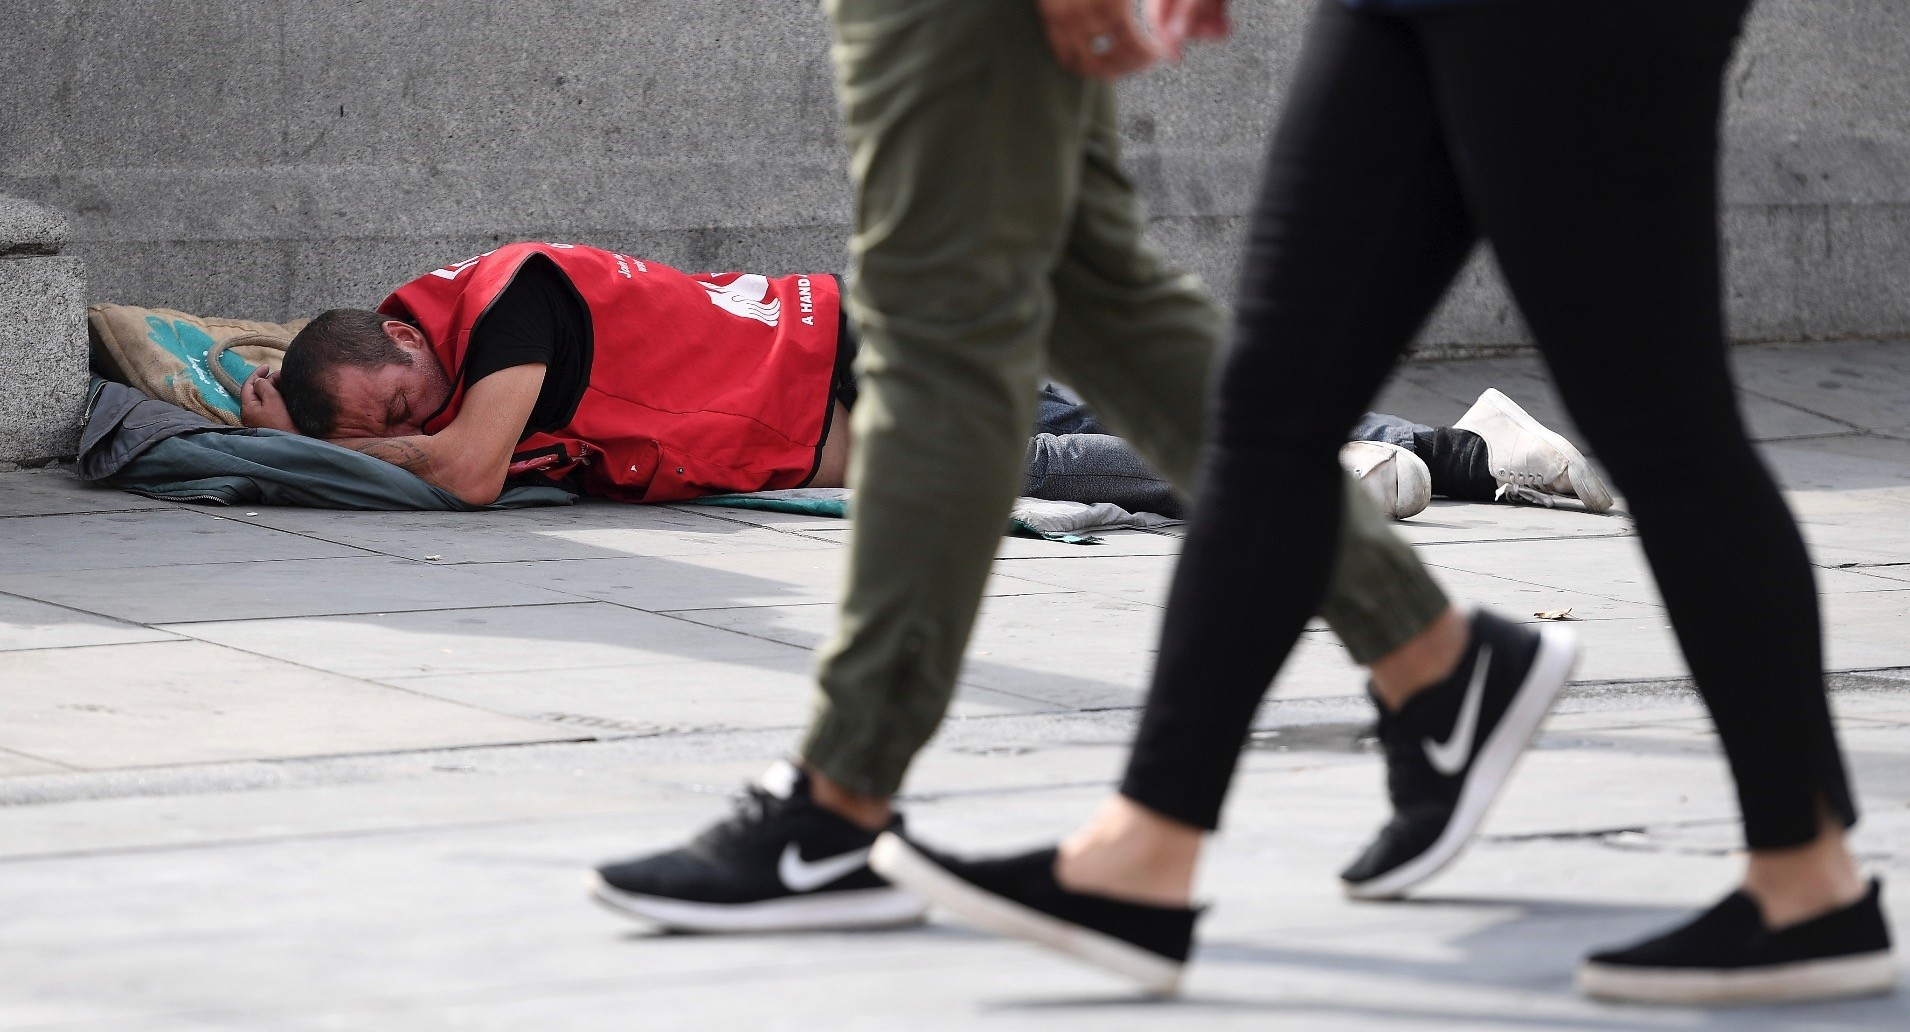 A homeless man takes a nap on a pavement in downtown London.